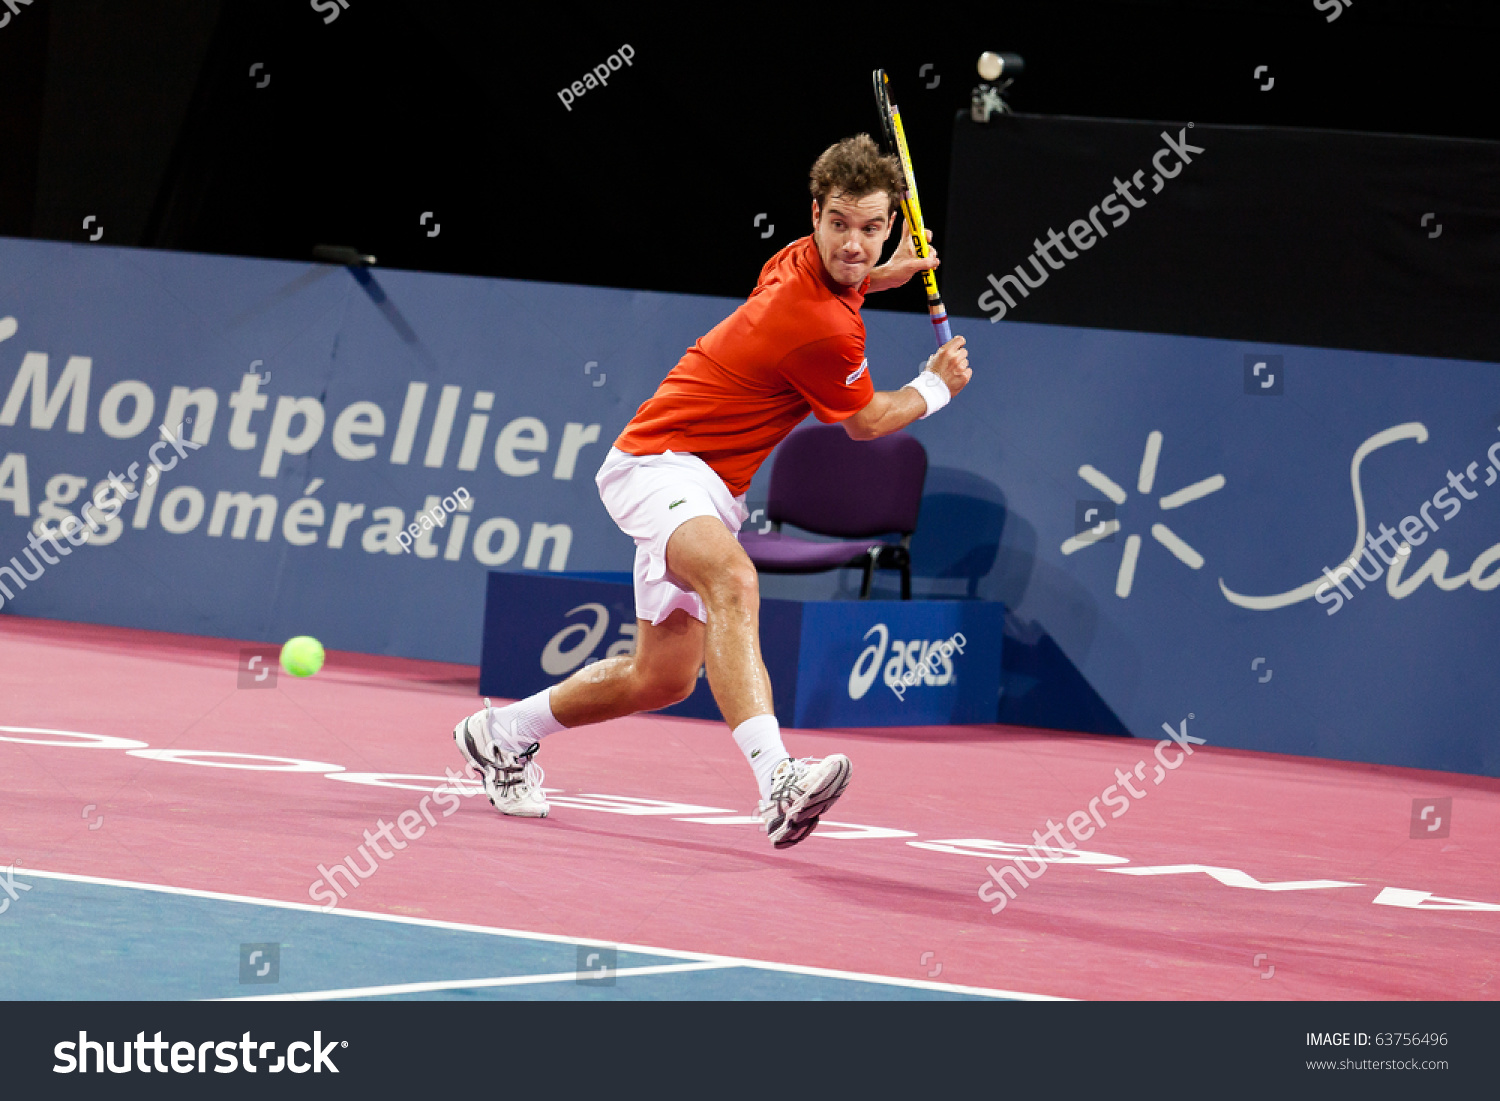 hispanic single men in gasquet Richard gasquet hits a return during the men's singles third round match between richard gasquet of france and novak djokovic of serbia at the 2018 us open tennis championships in new york.